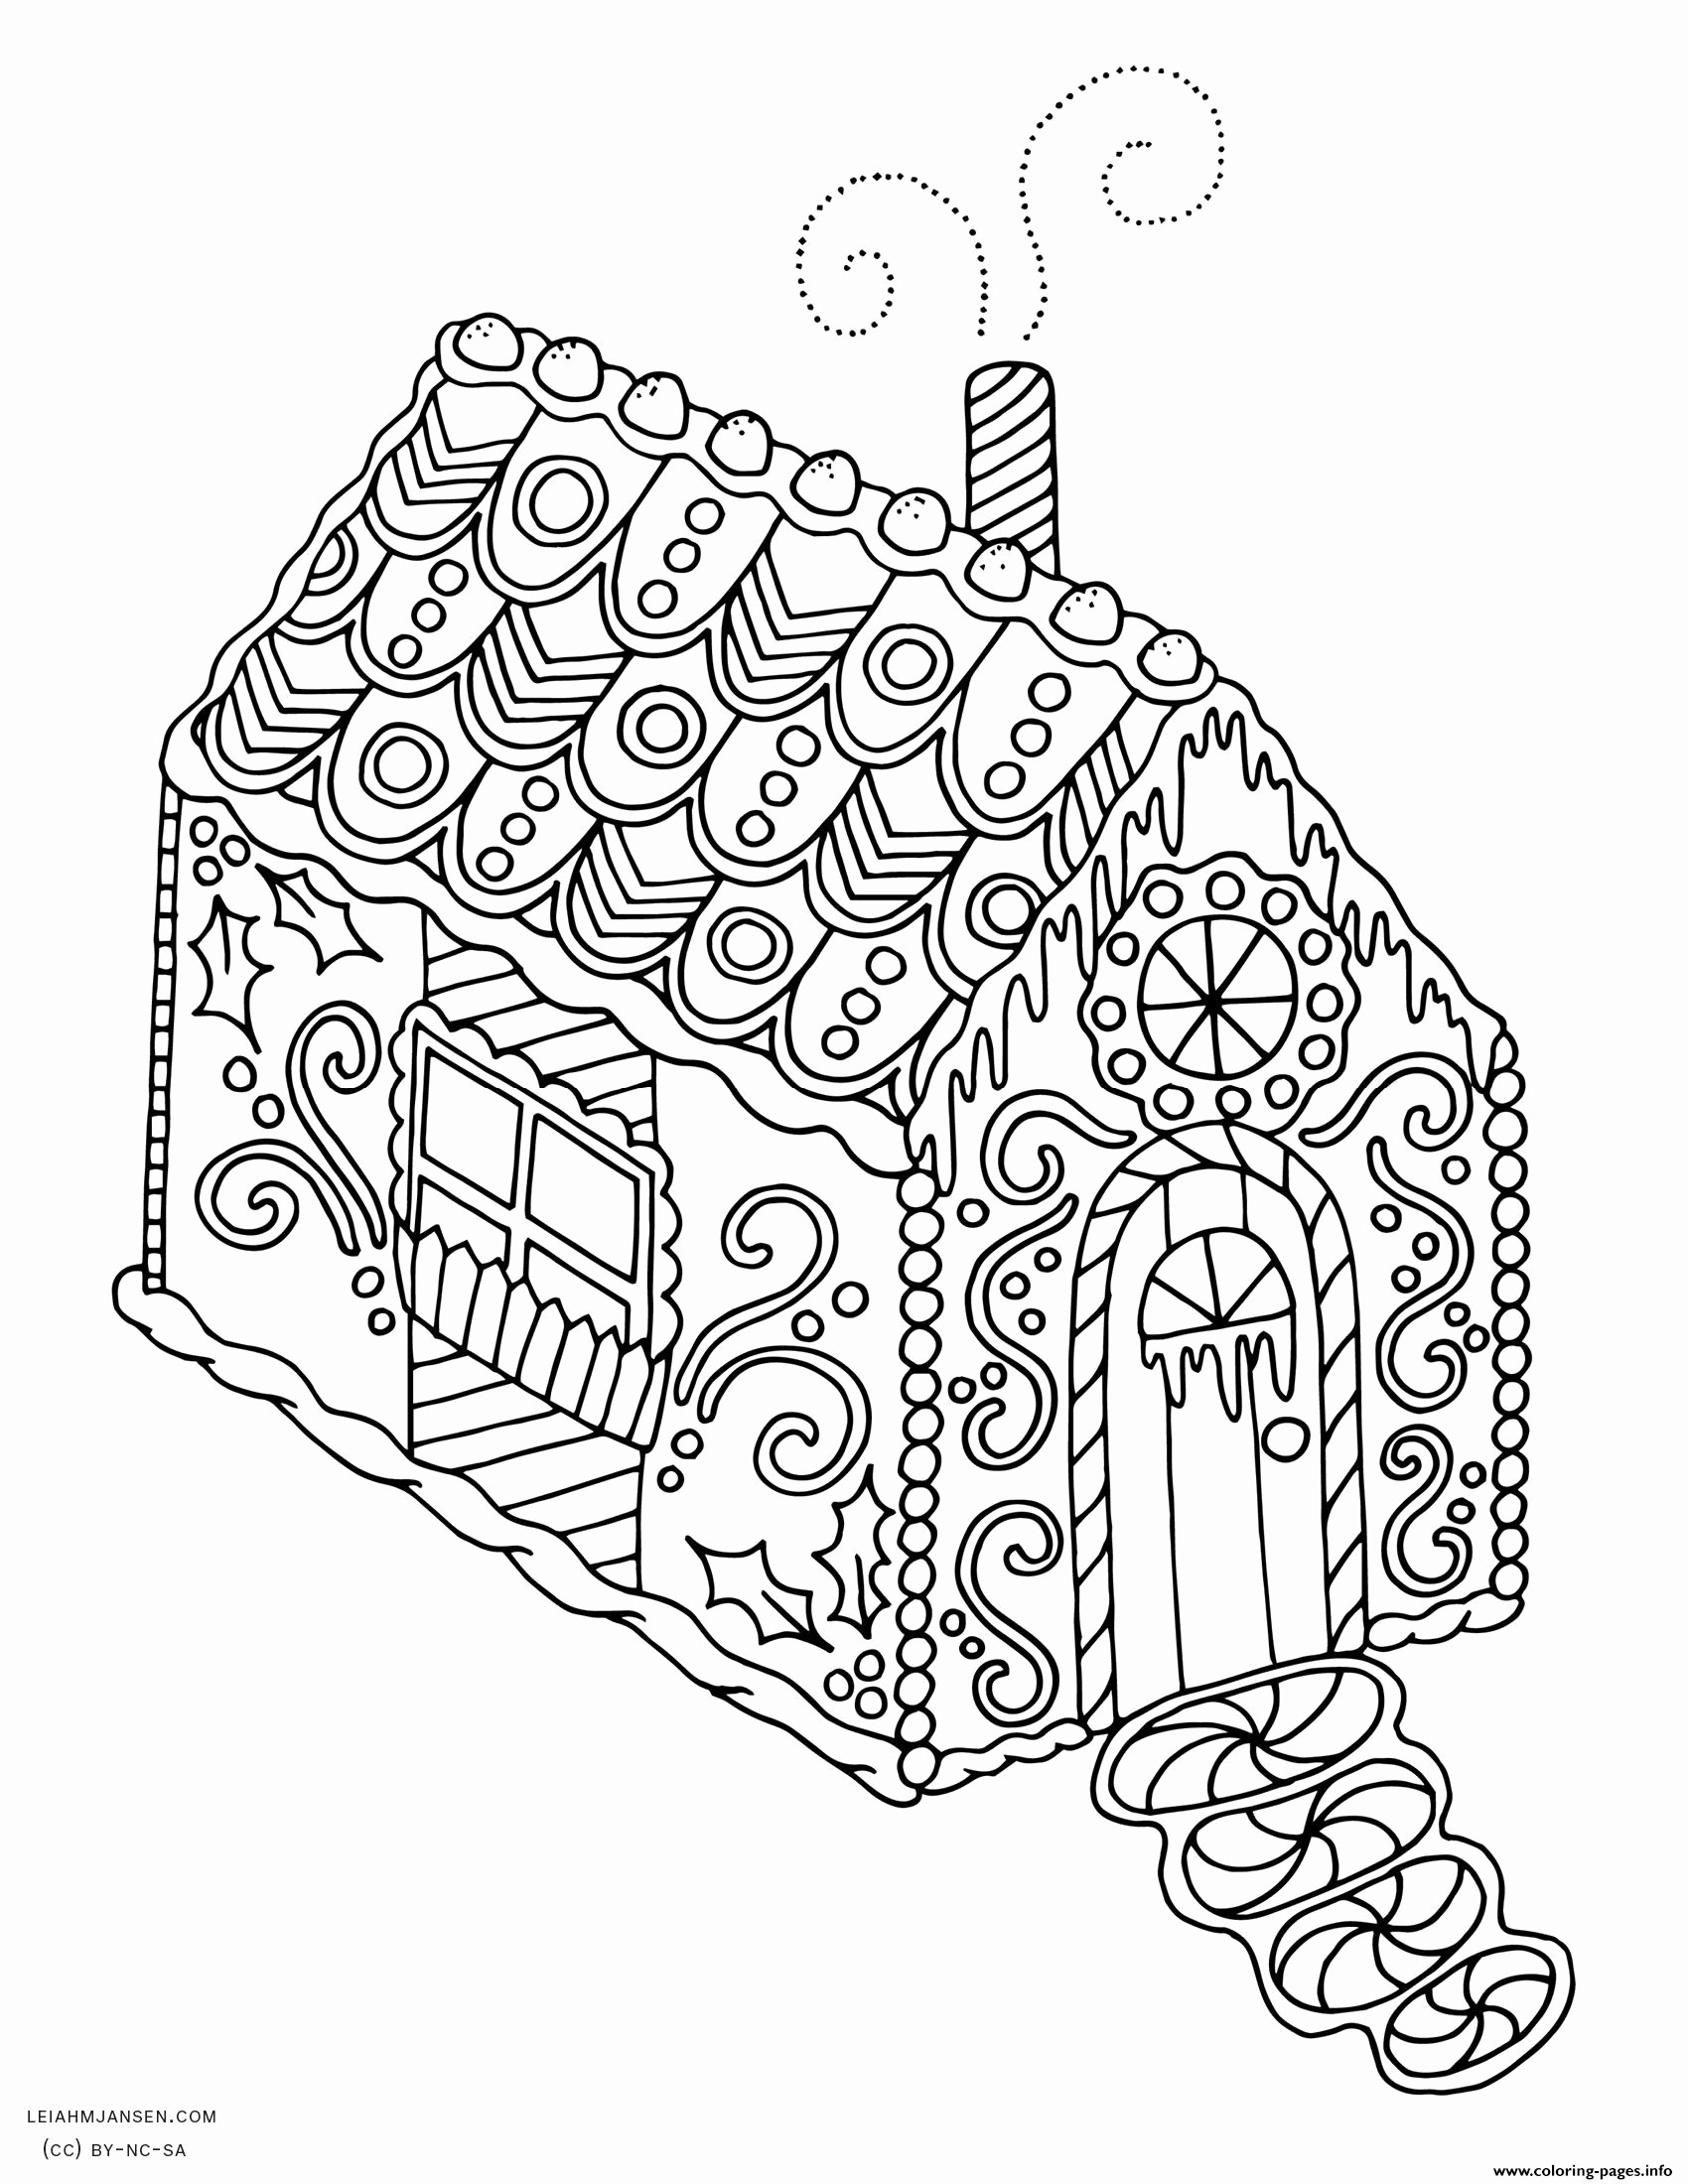 Gingerbread Coloring Pages Gingerbread House Coloring Pages To Print Free Disney Gingerbread